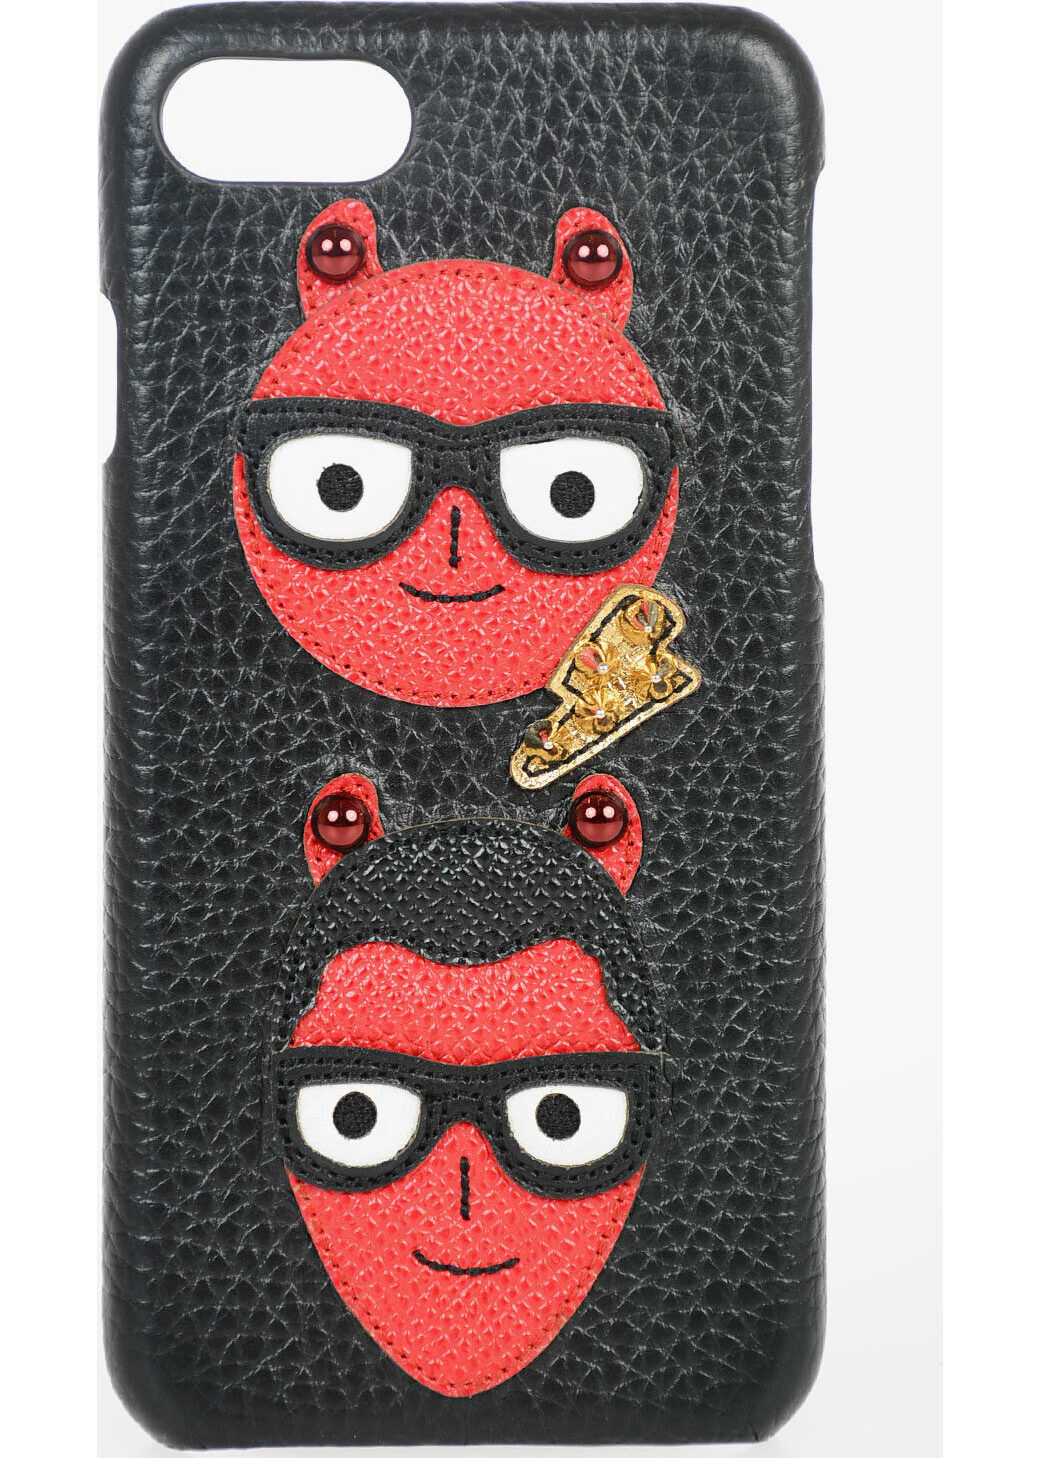 Leather Iphone 7 Cover with DESIGNERS Patches thumbnail